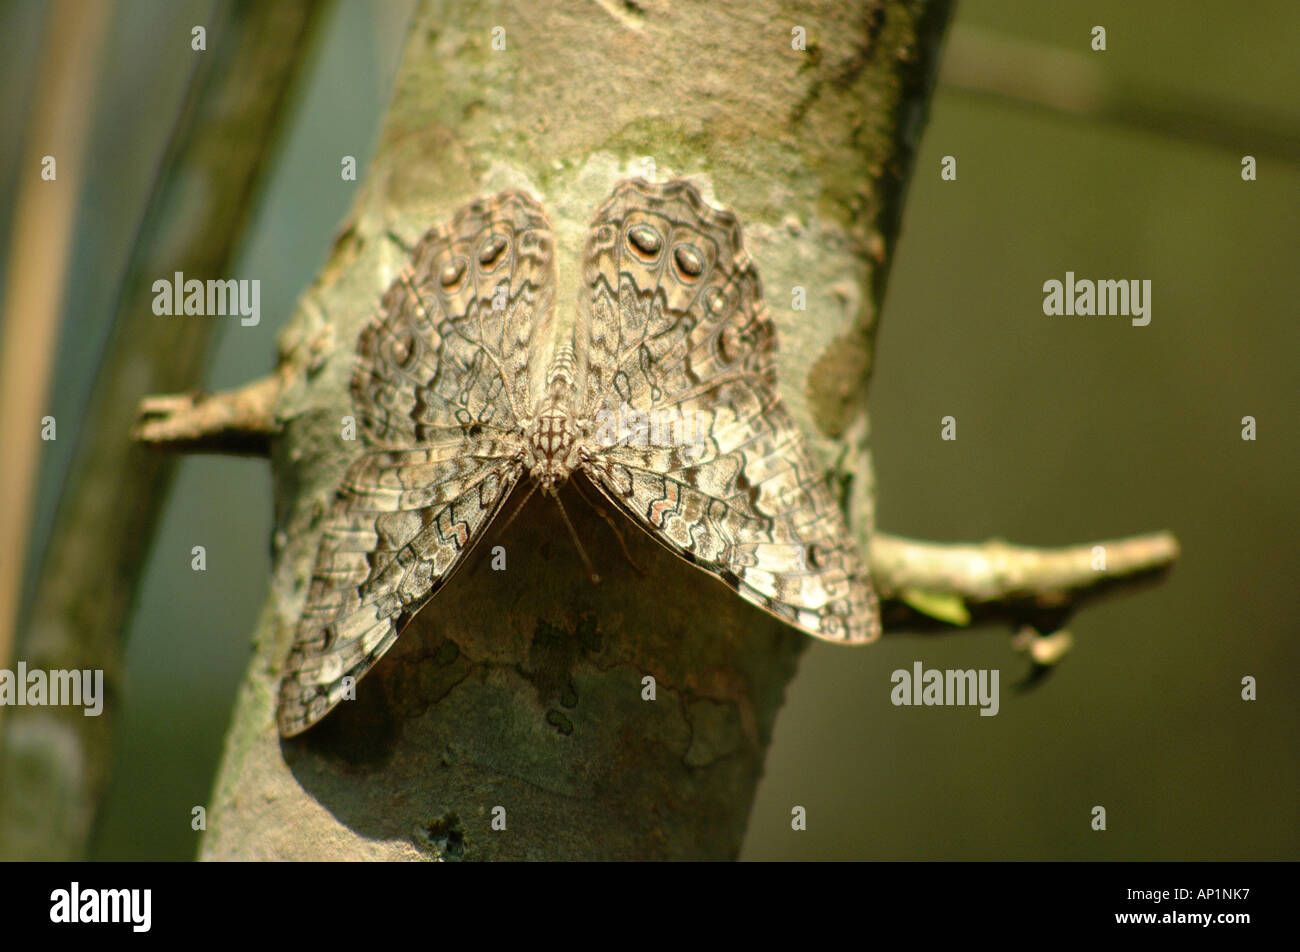 Butterfly Moth Animal Nature Mimicry Camouflage Stock